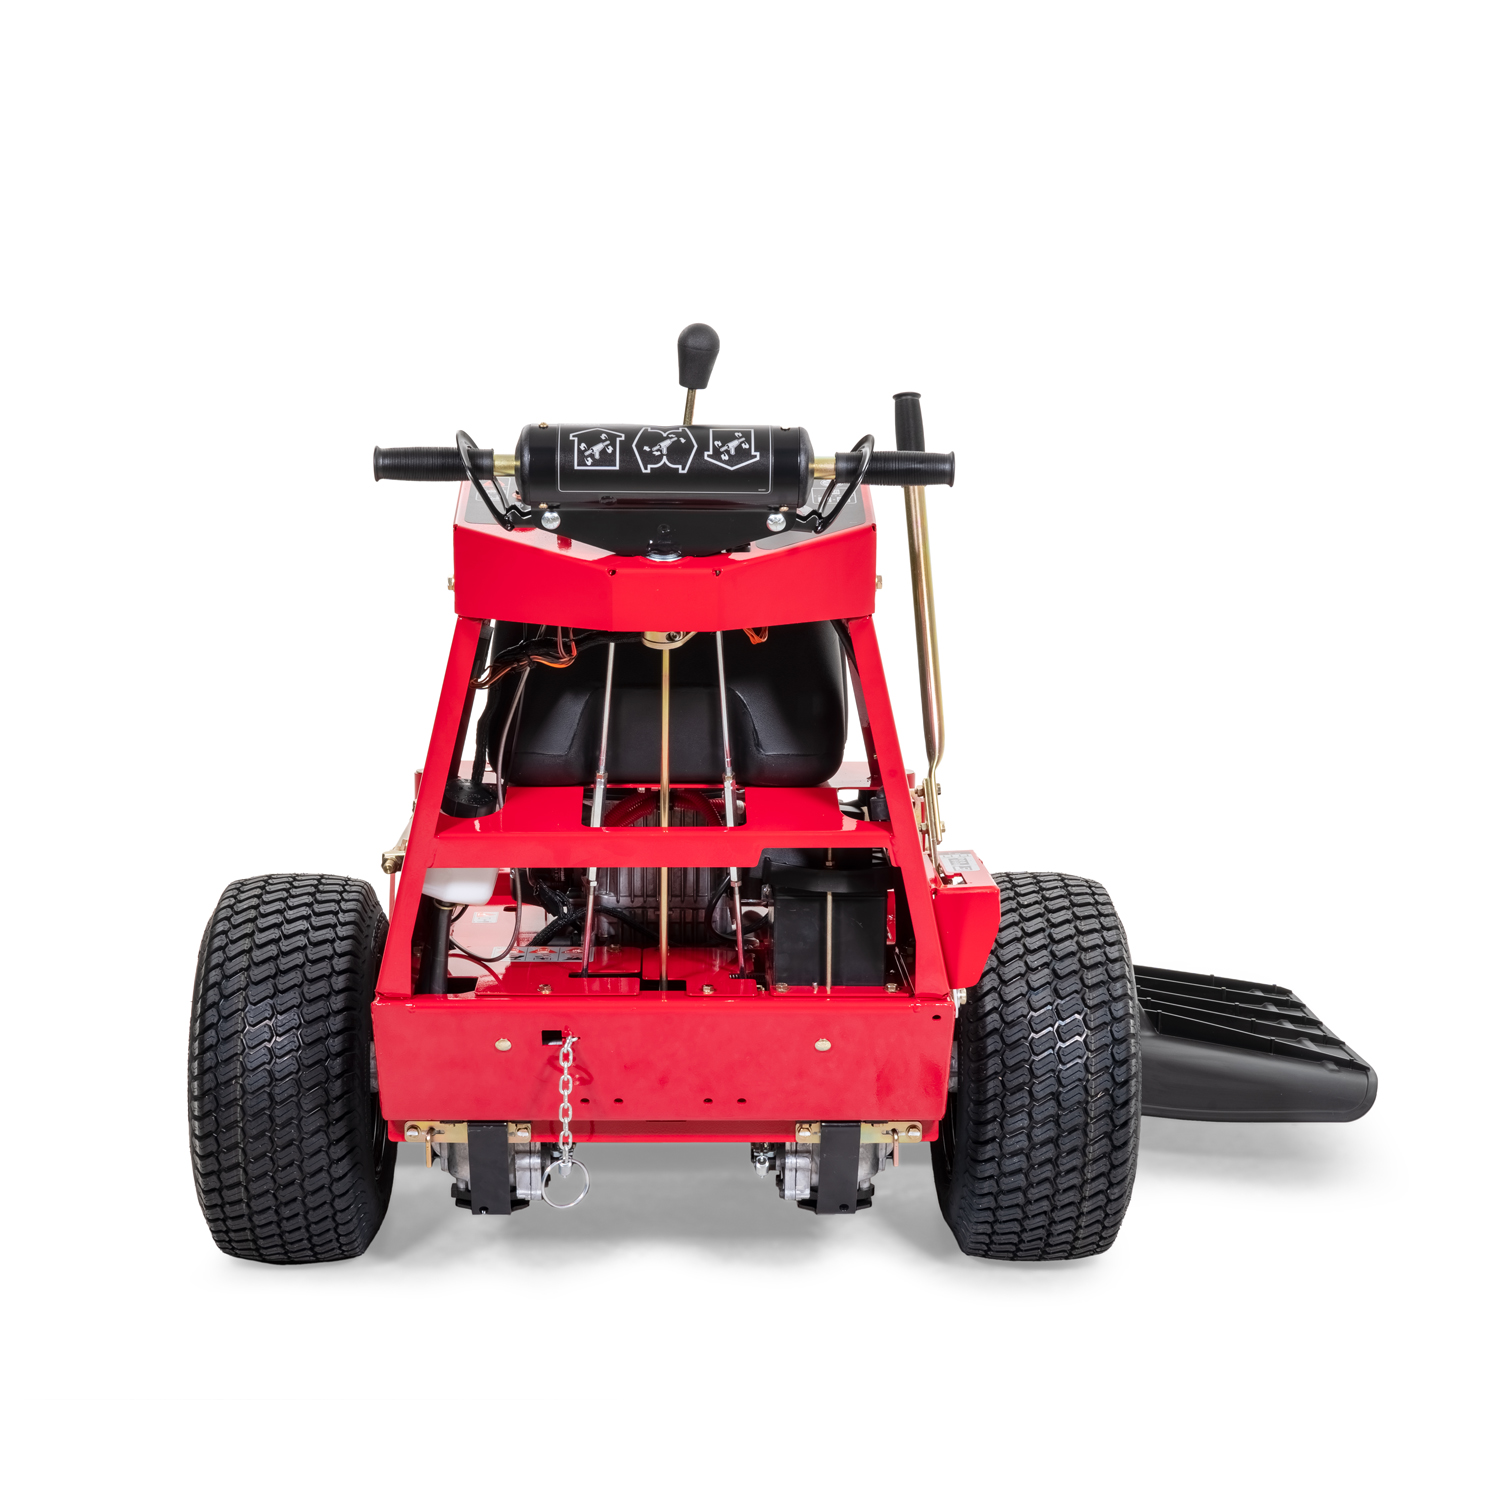 Image of the rear of a red walk-behind mower